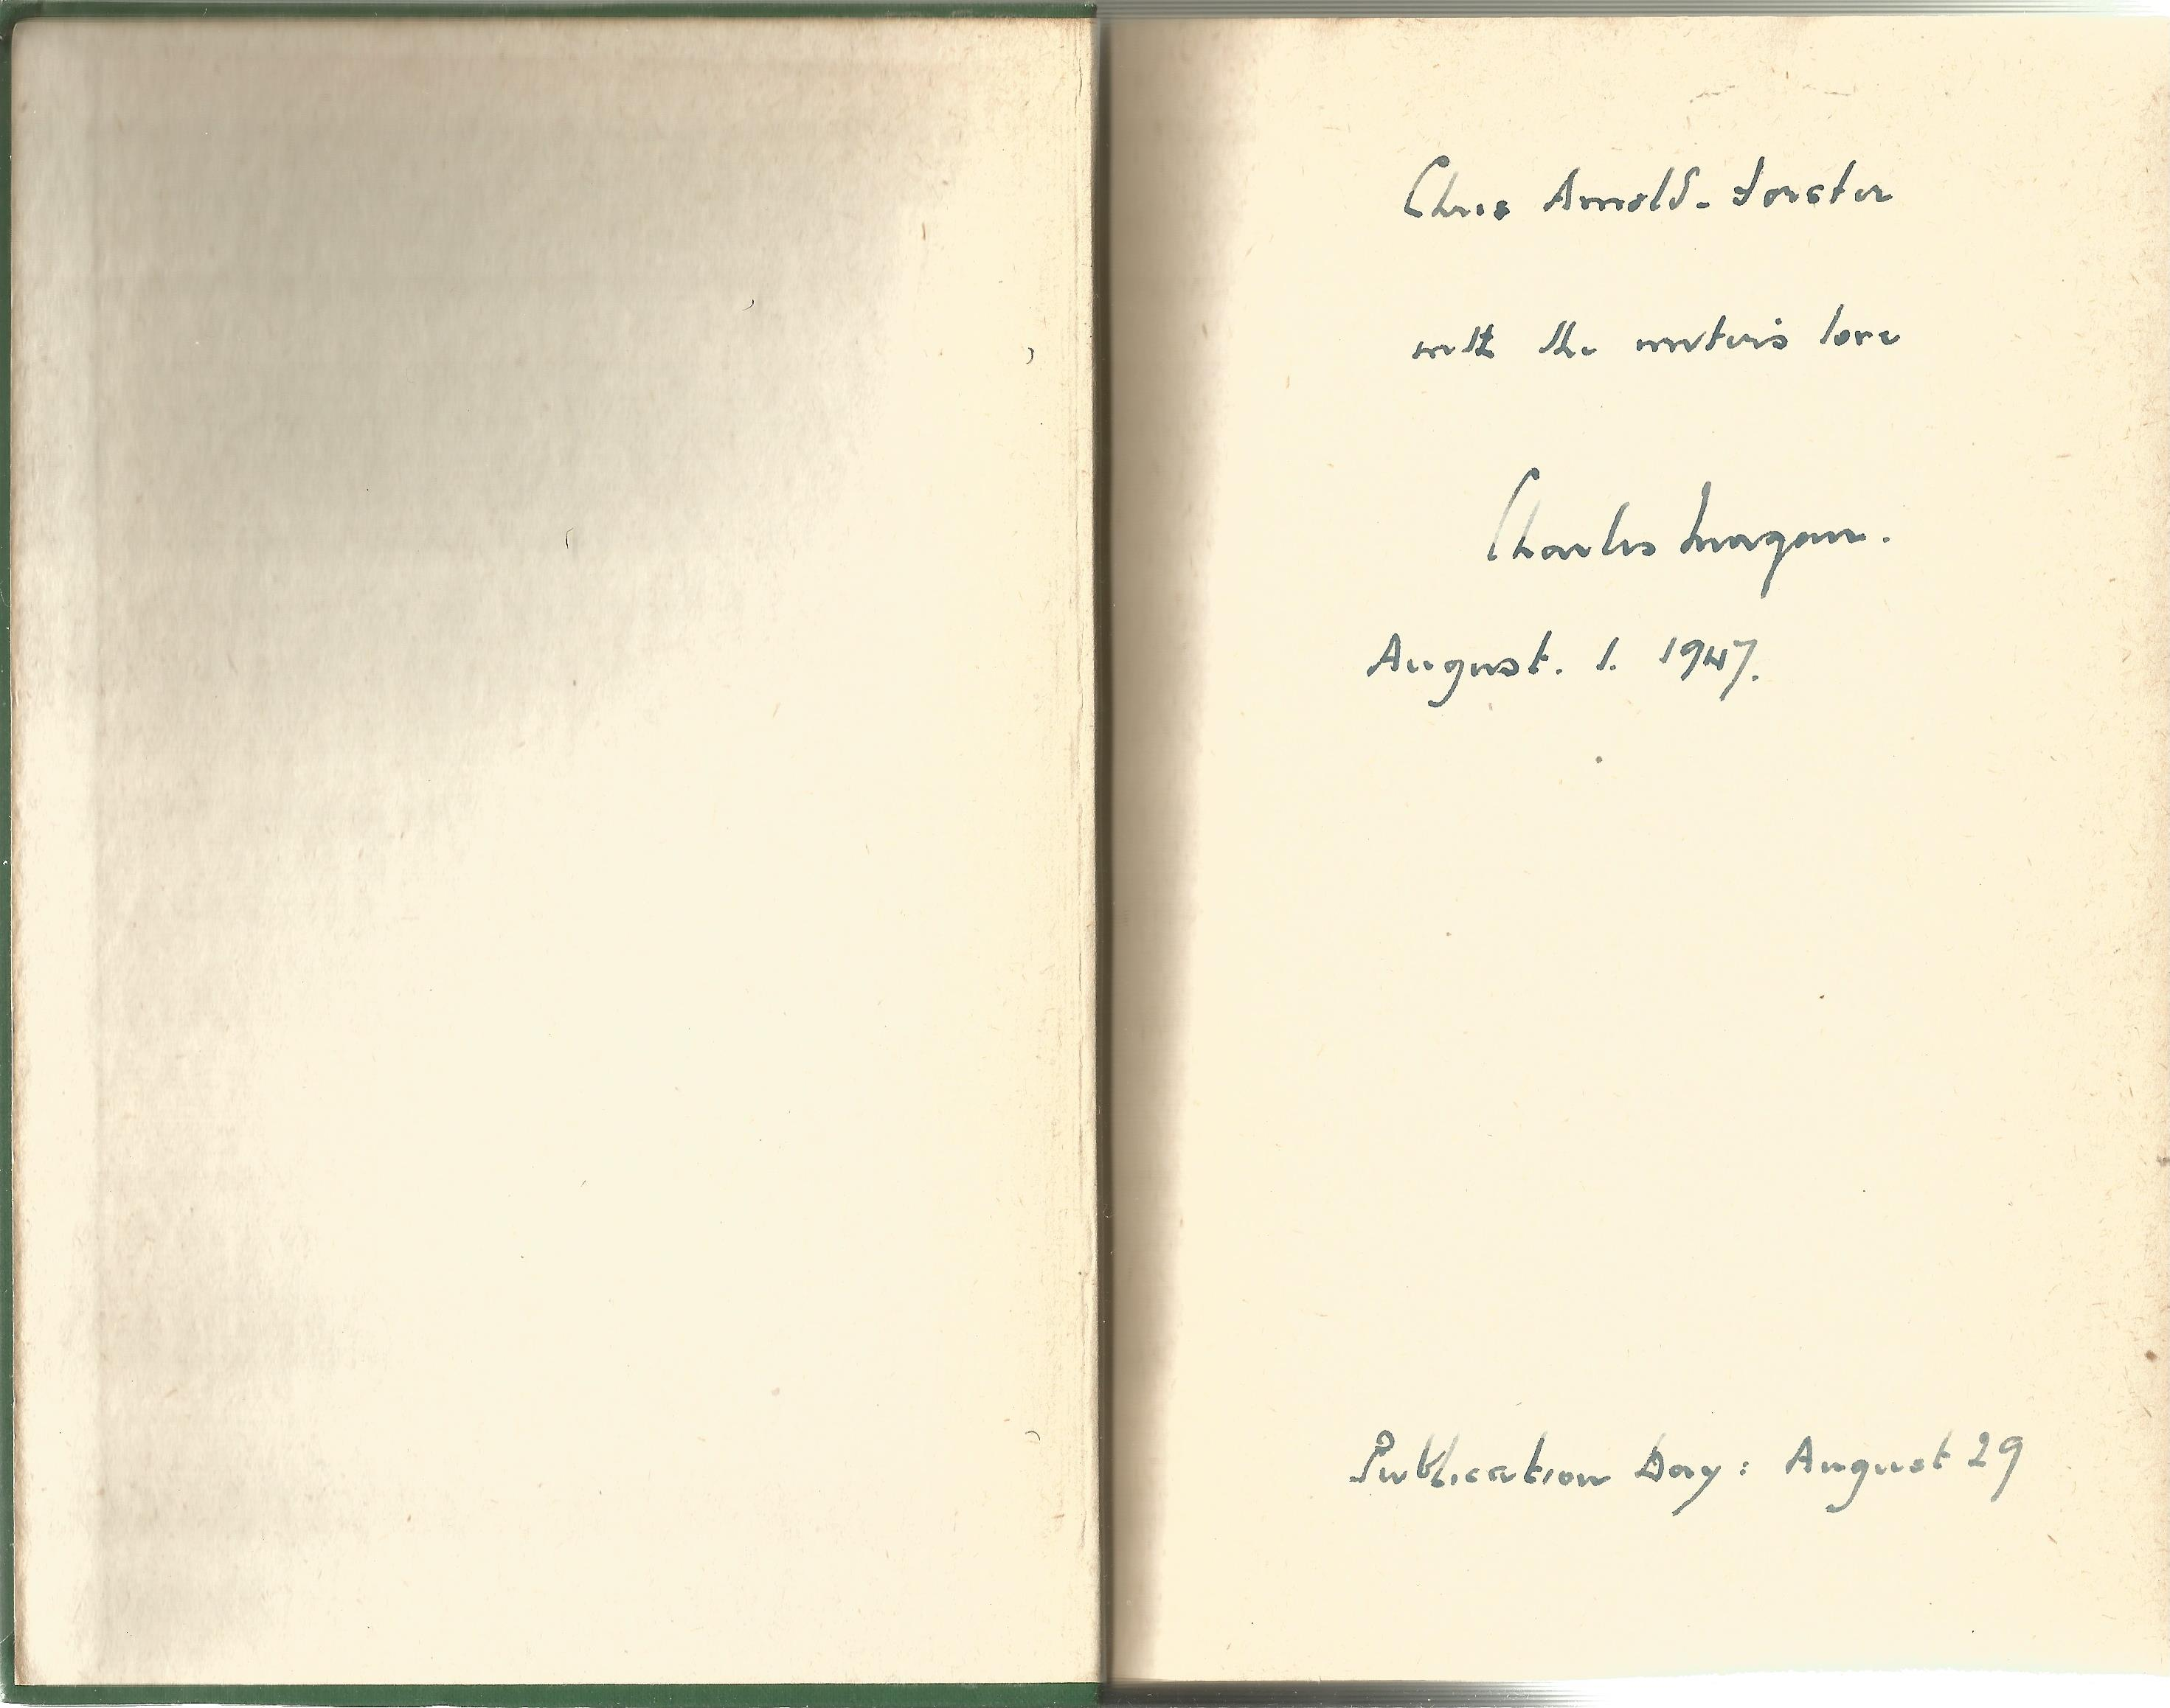 Charles Morgan Hardback Book The Judges Story signed by the Author on the First Page and dated 1st - Image 2 of 2